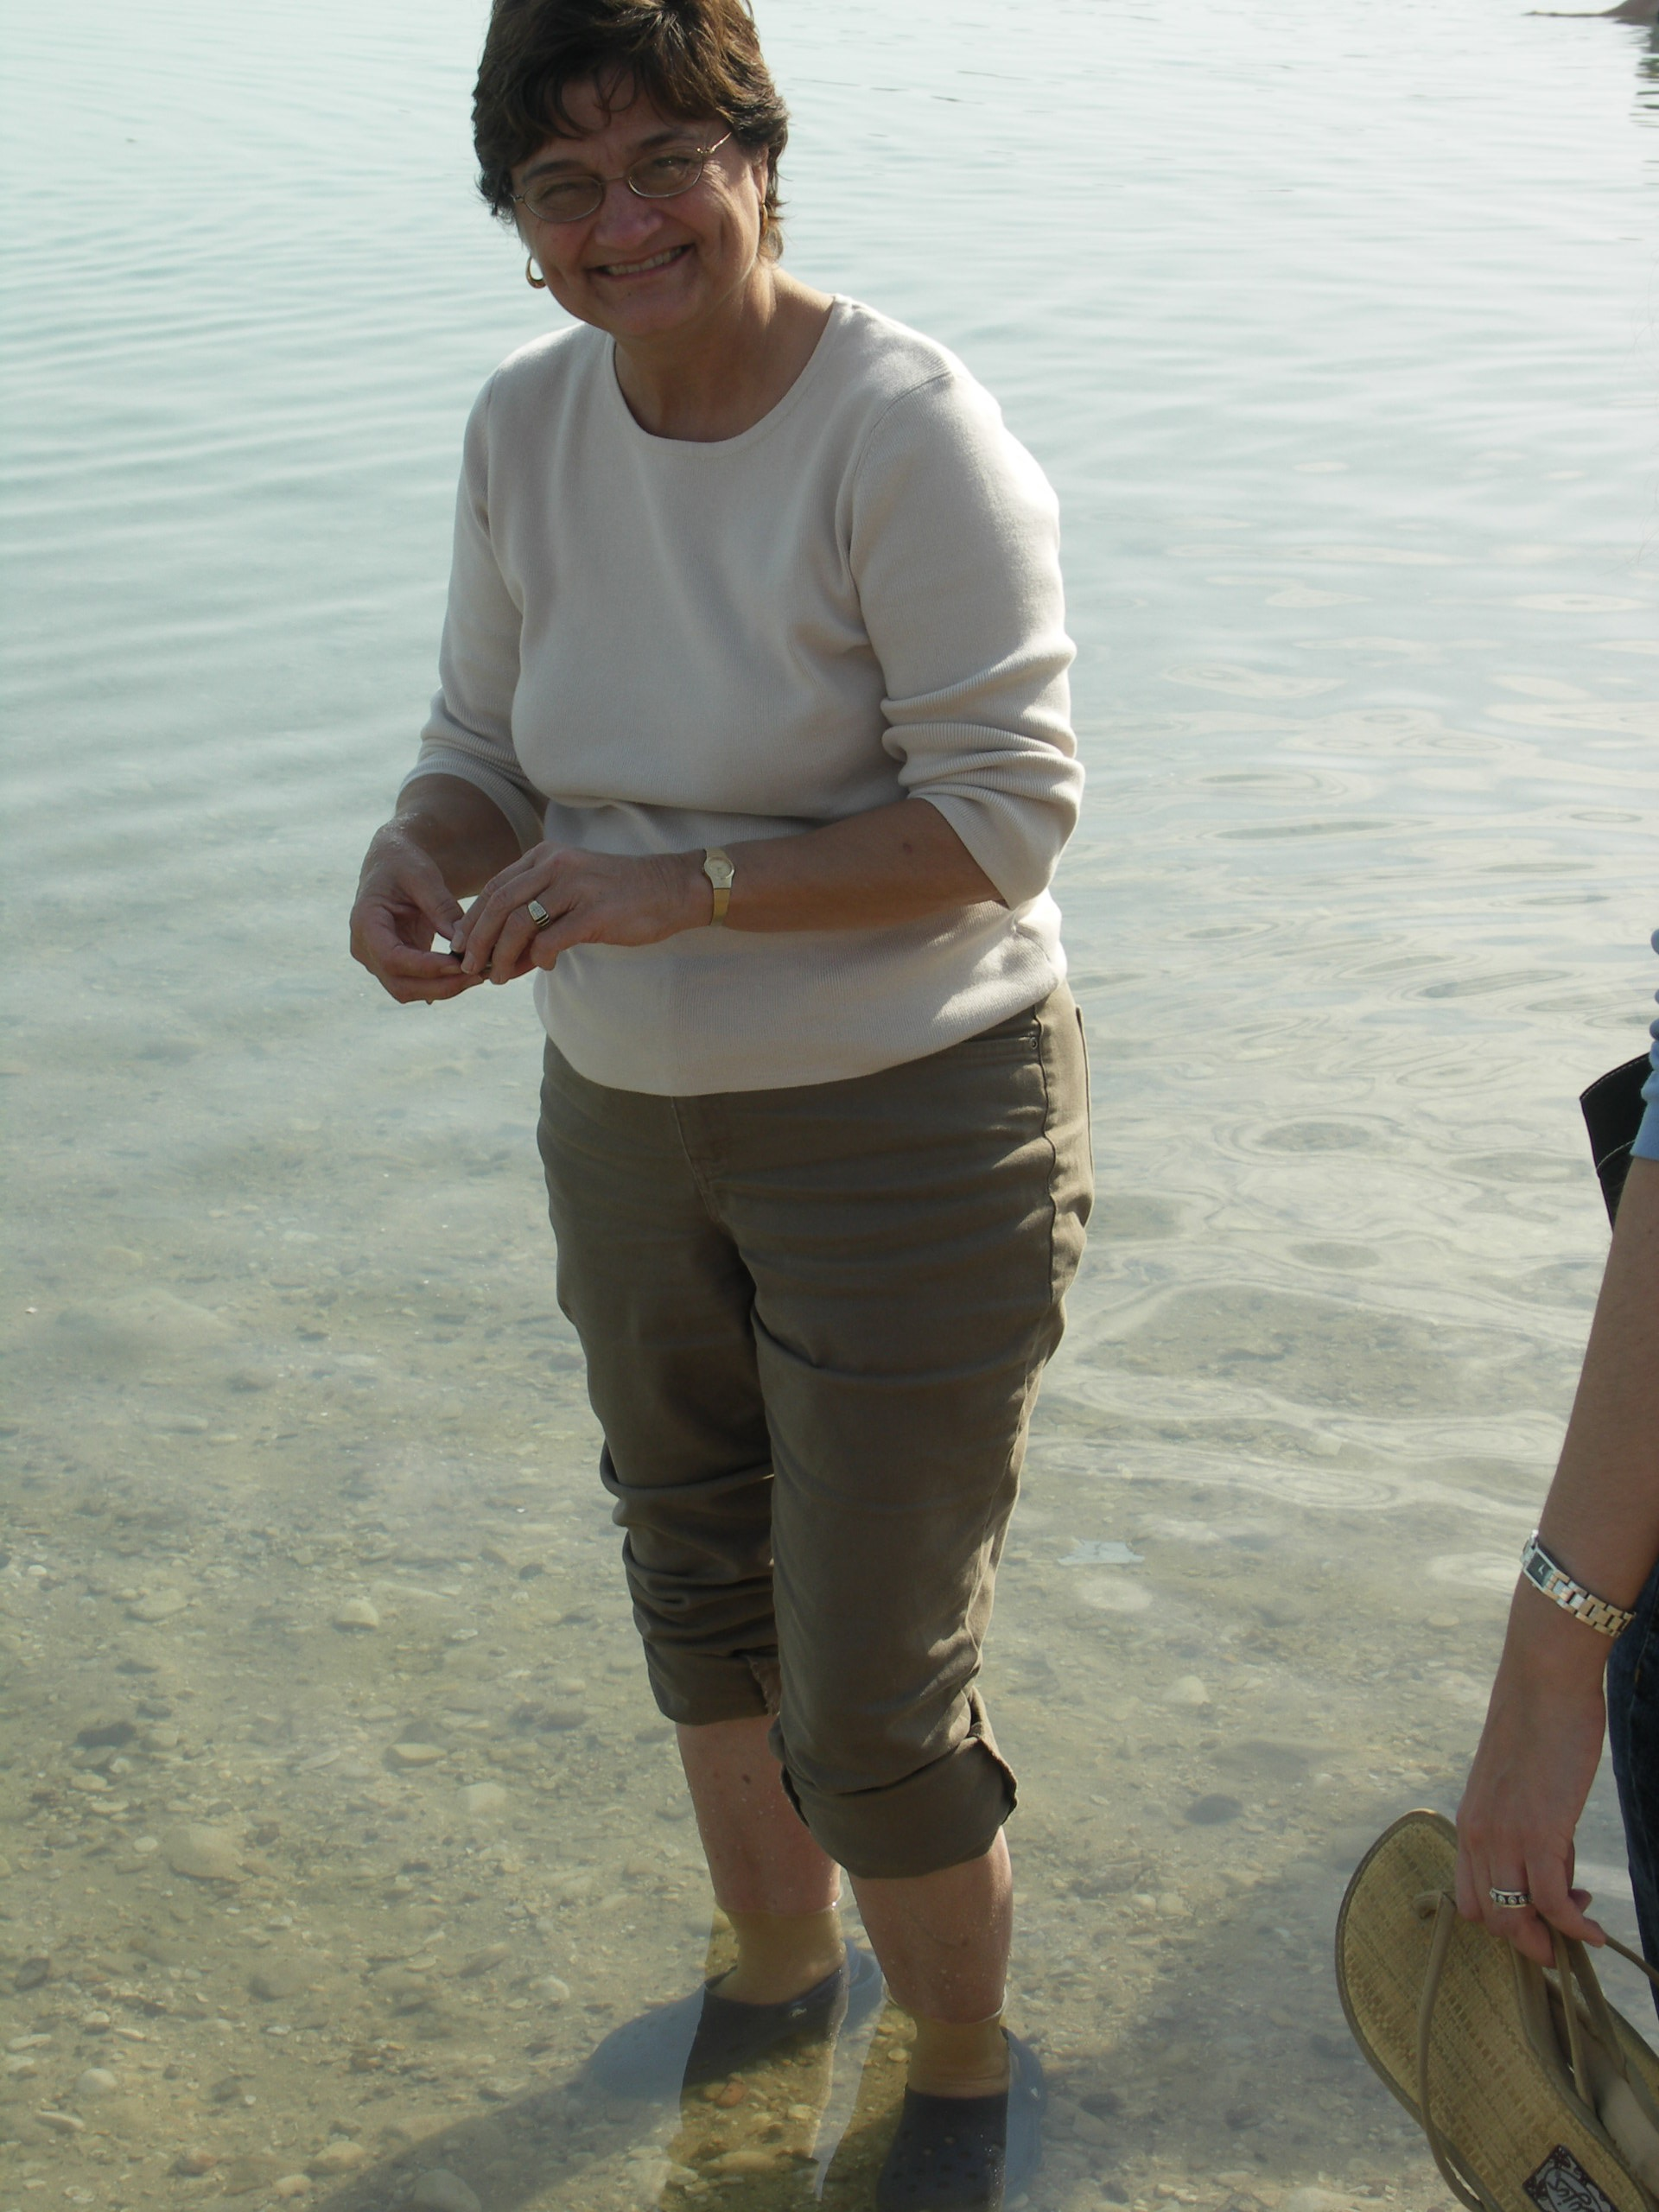 We did not have time to float in this salten sea so I settled for wading around a bit. When you are in  a  desert as vast as the Negev you appreciate any body of water.  I found this sea along with the Jordan River and the Sea of Galilee to be intriguing and somewhat mystical.